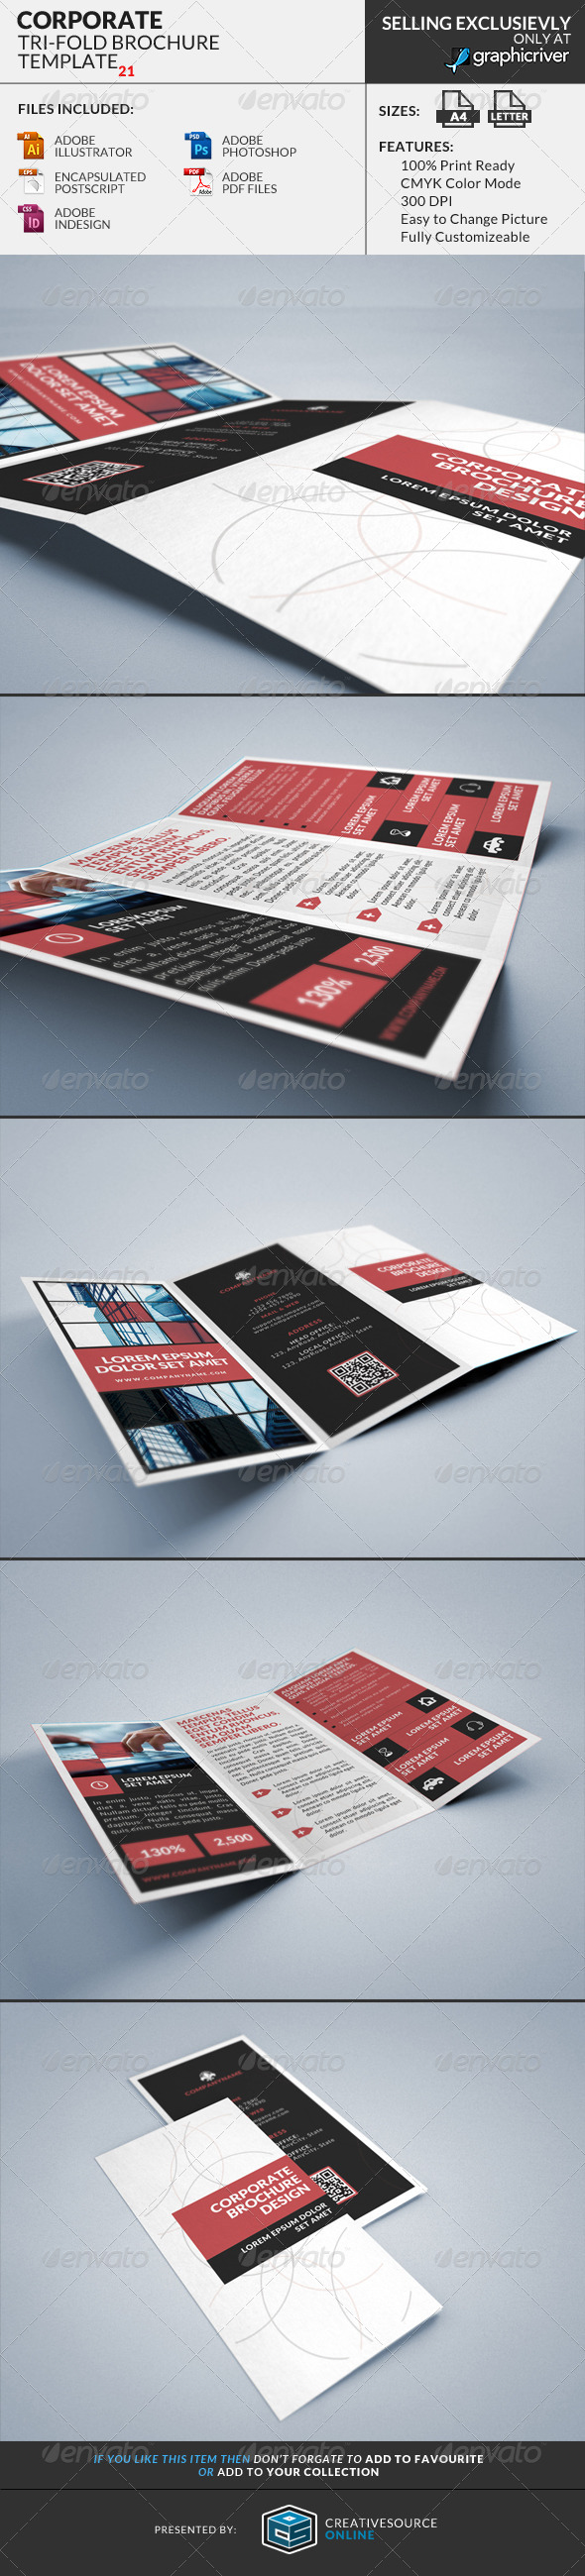 Corporate Tri-Fold Brochures Template 21